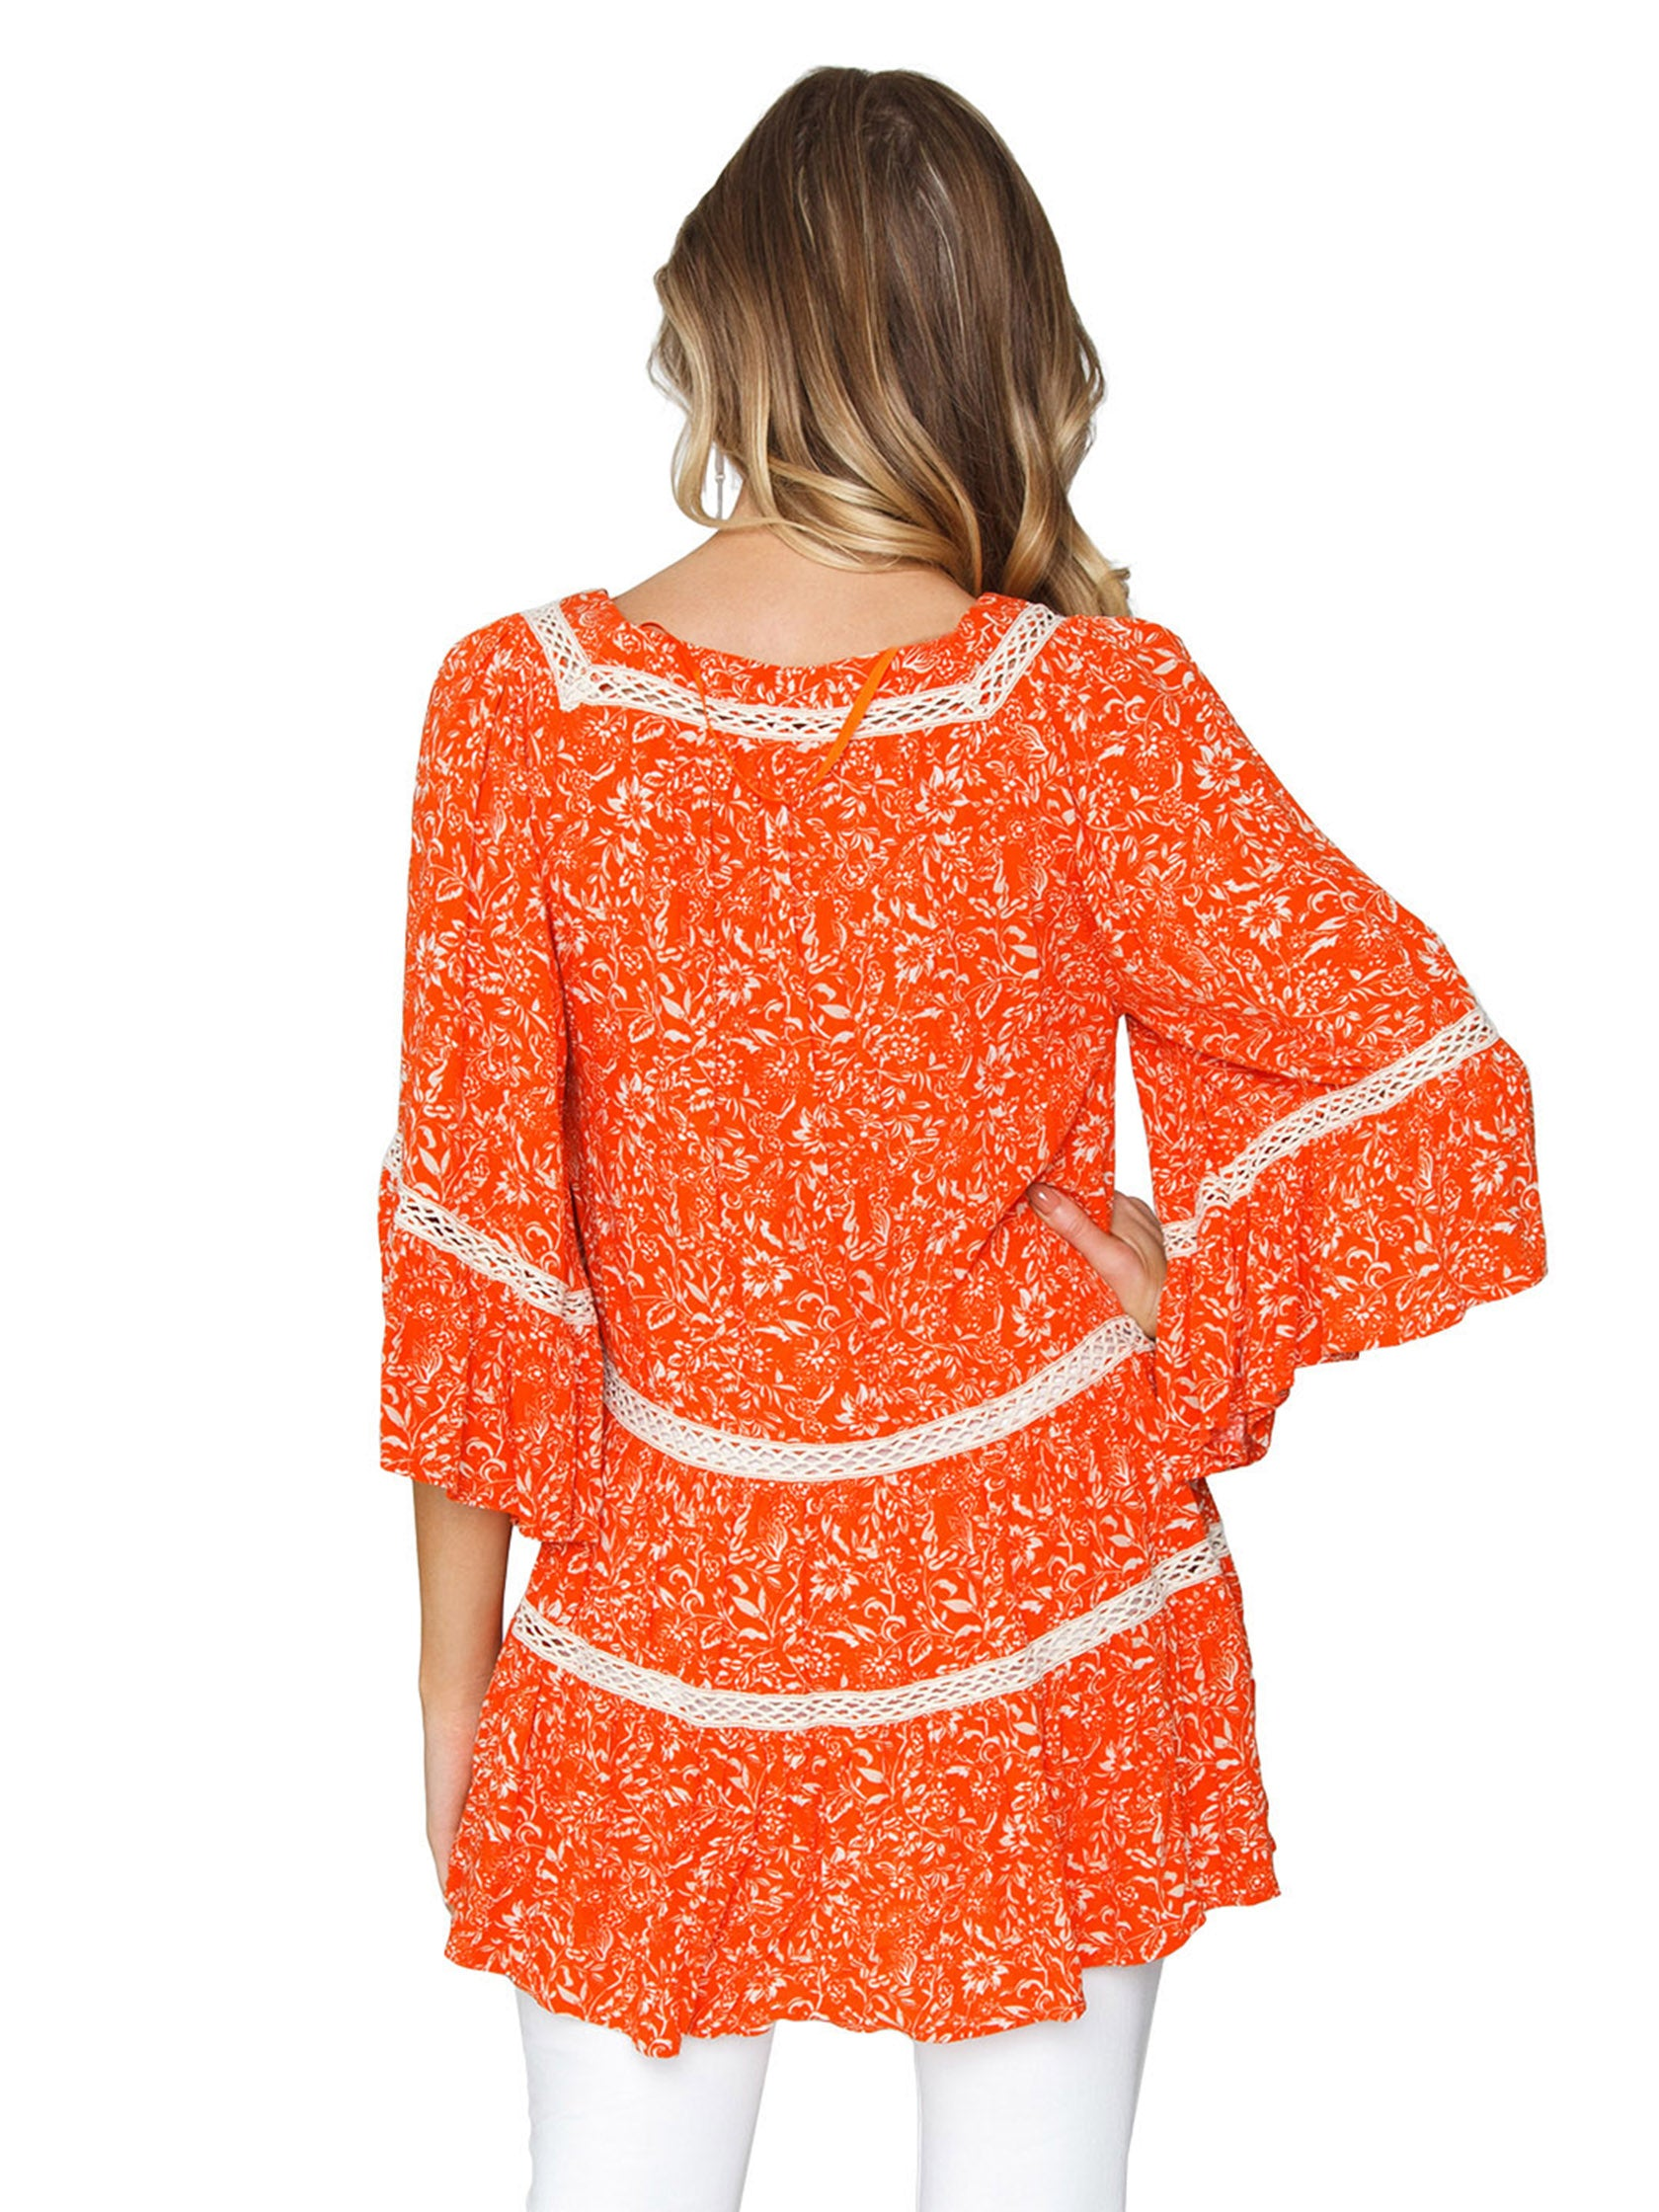 Women outfit in a top rental from Free People called Talk About It Tunic